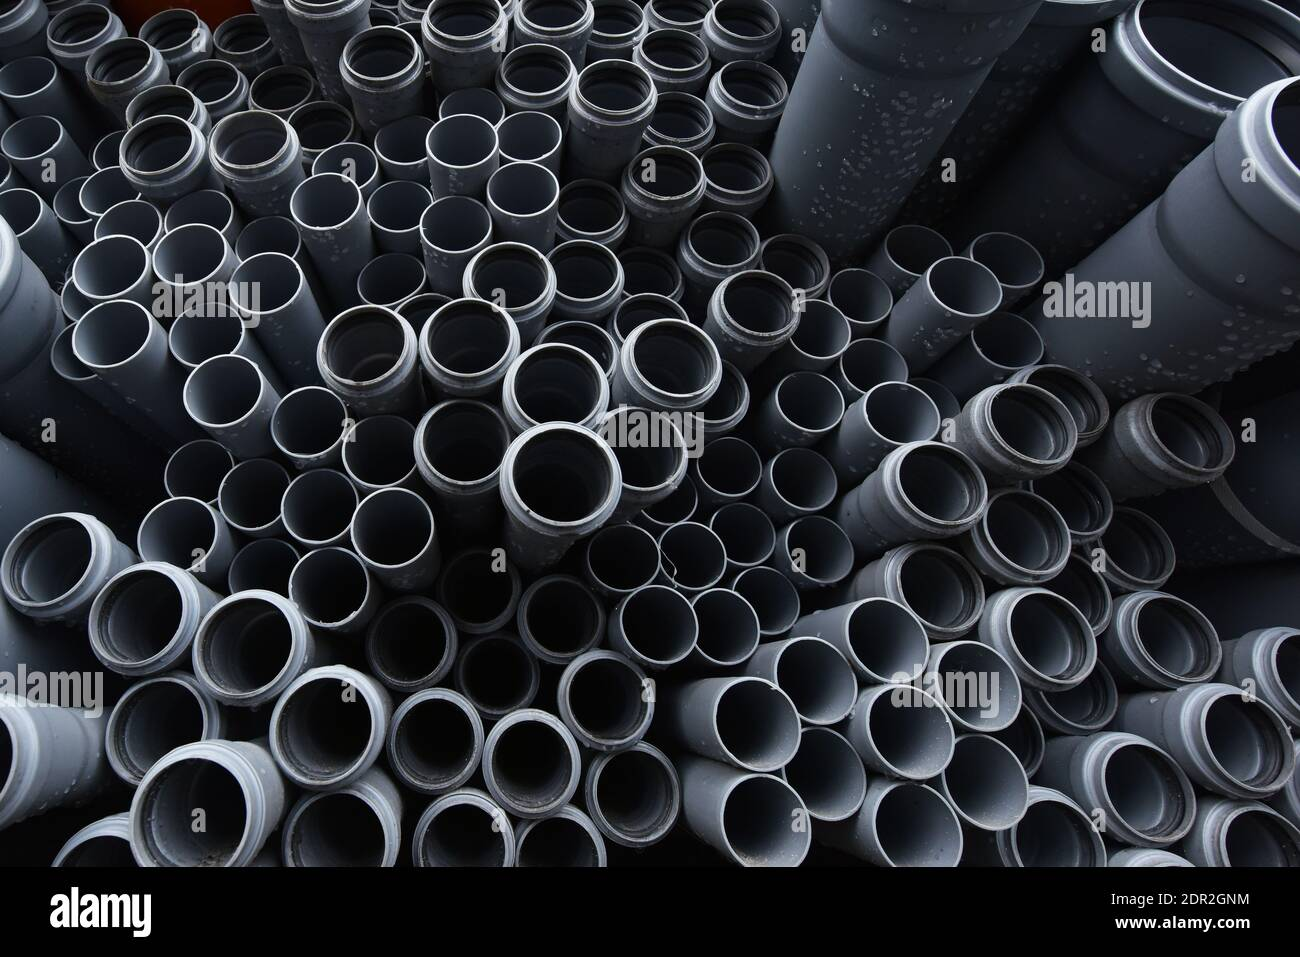 New gray plastic pipes for the sewage system. Stock Photo